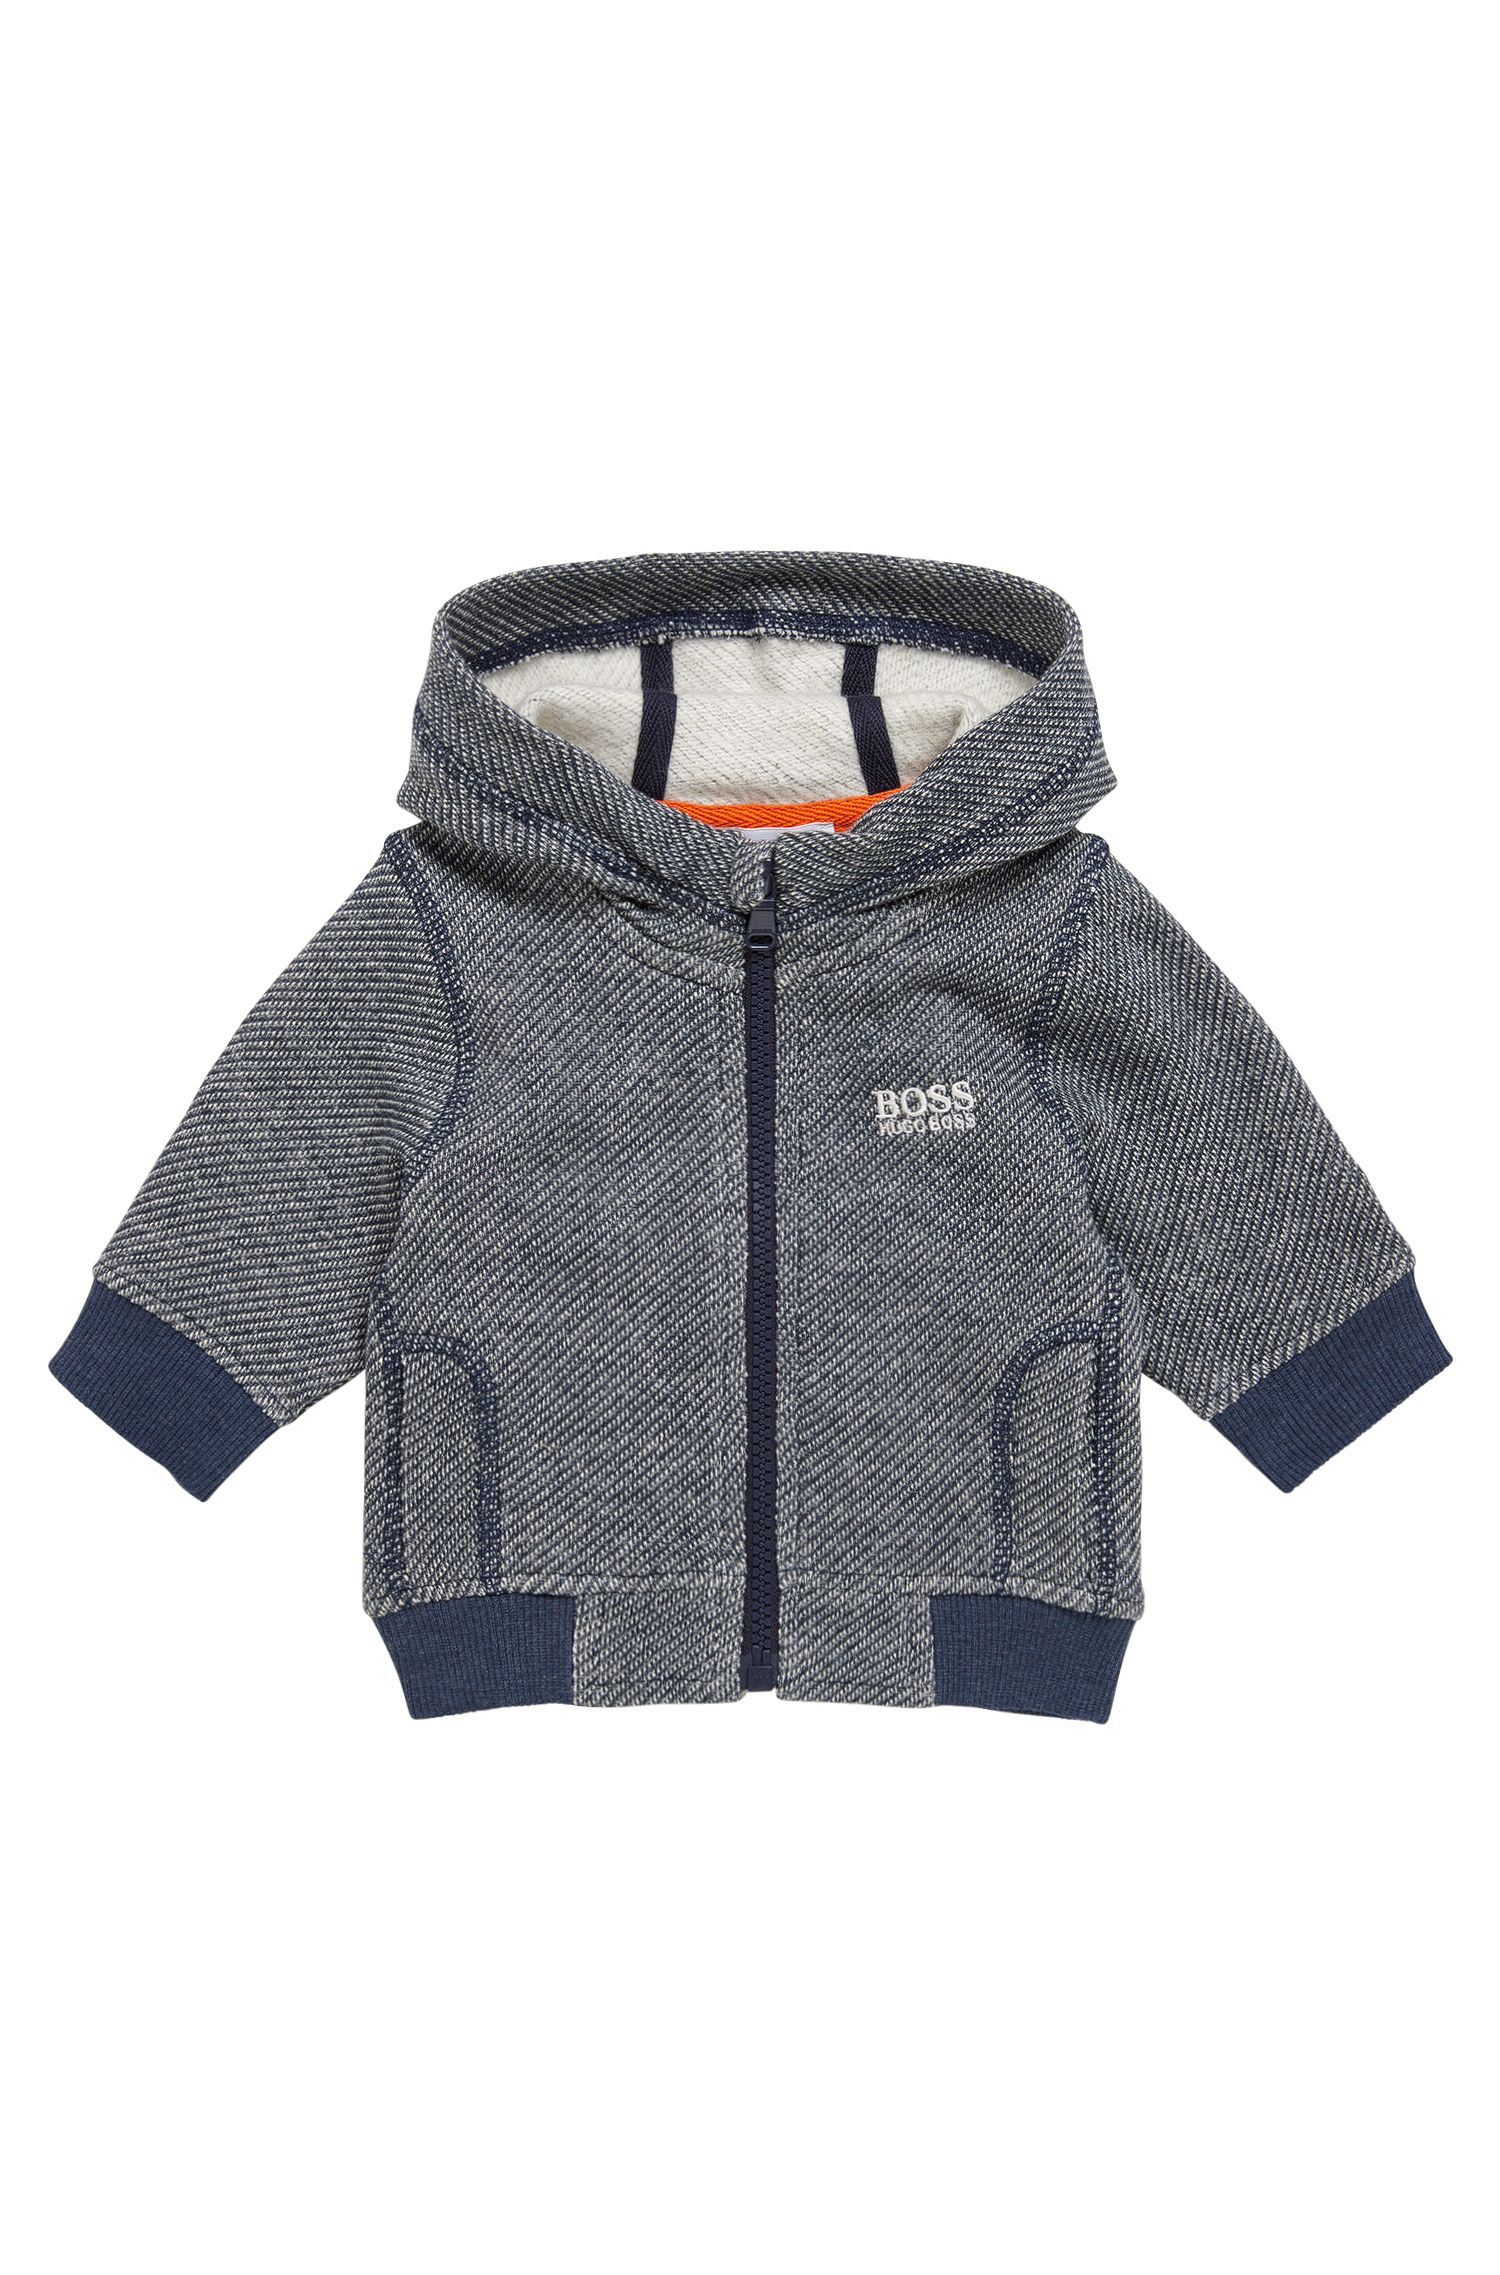 'J05519' | Toddler Stretch Cotton Blend Hooded Sweat Jacket